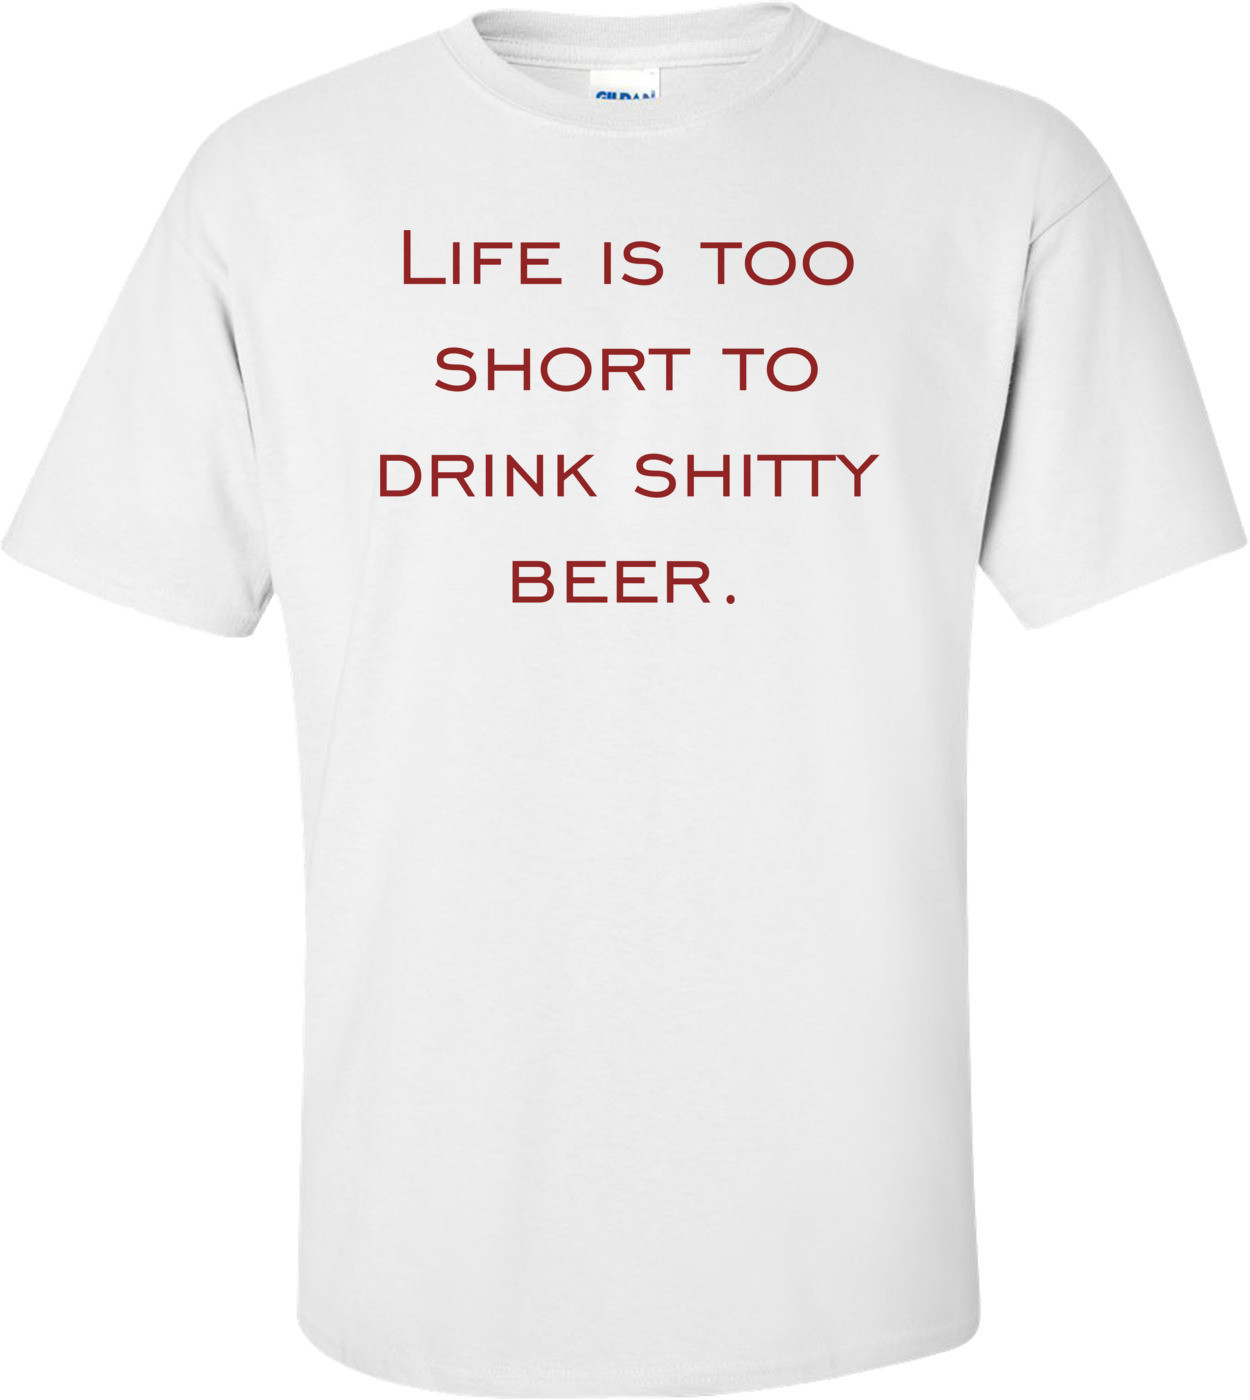 Life is too short to drink shitty beer. Shirt